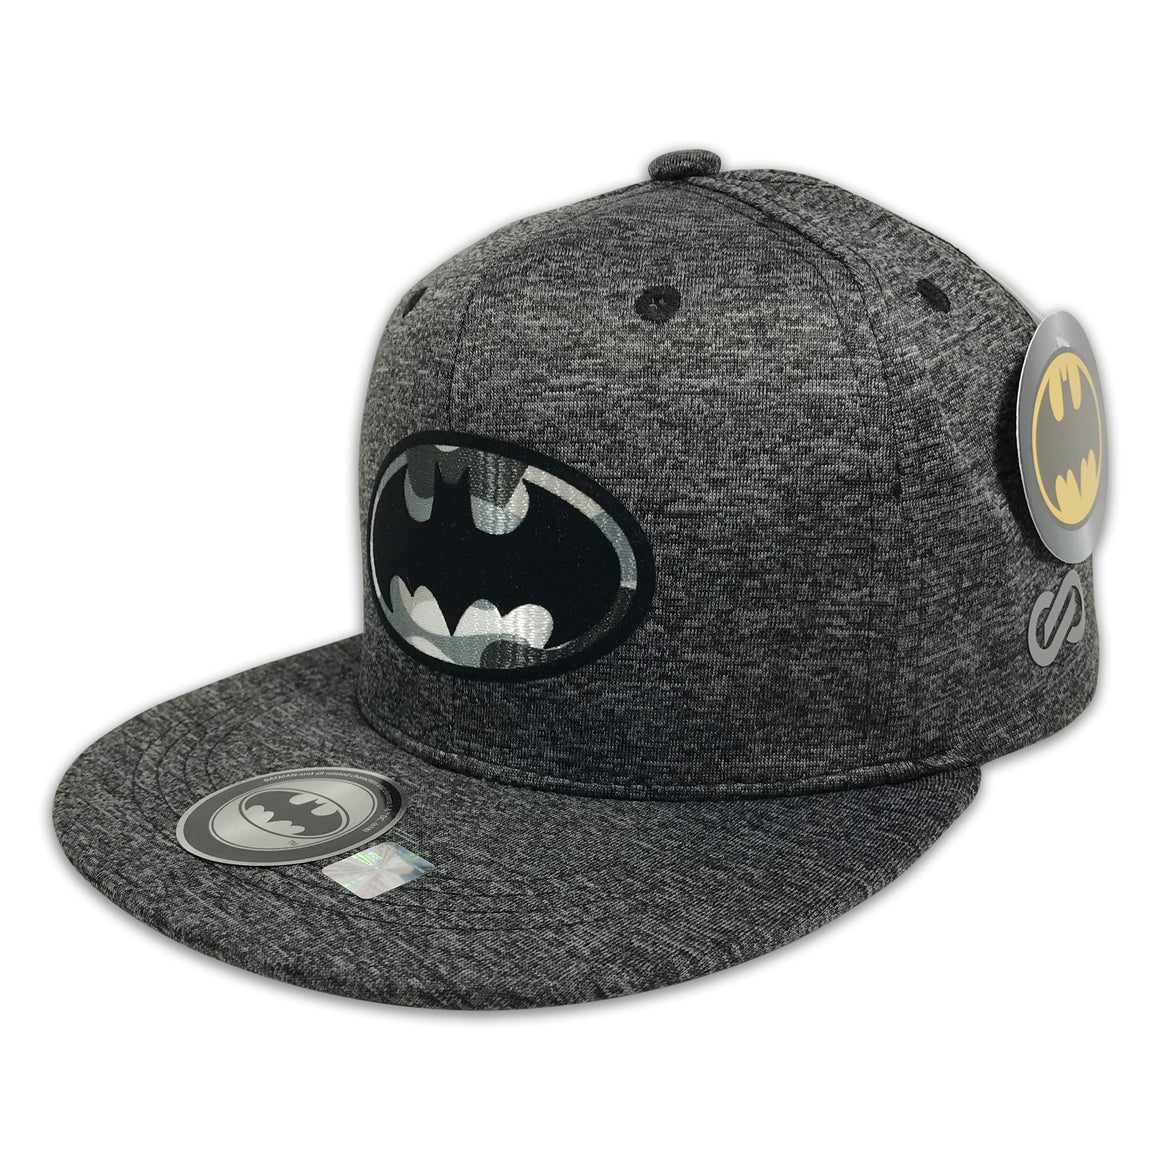 Gorra Batman Trucker Cap BLACK/YELLOW - SNAPBACK MX